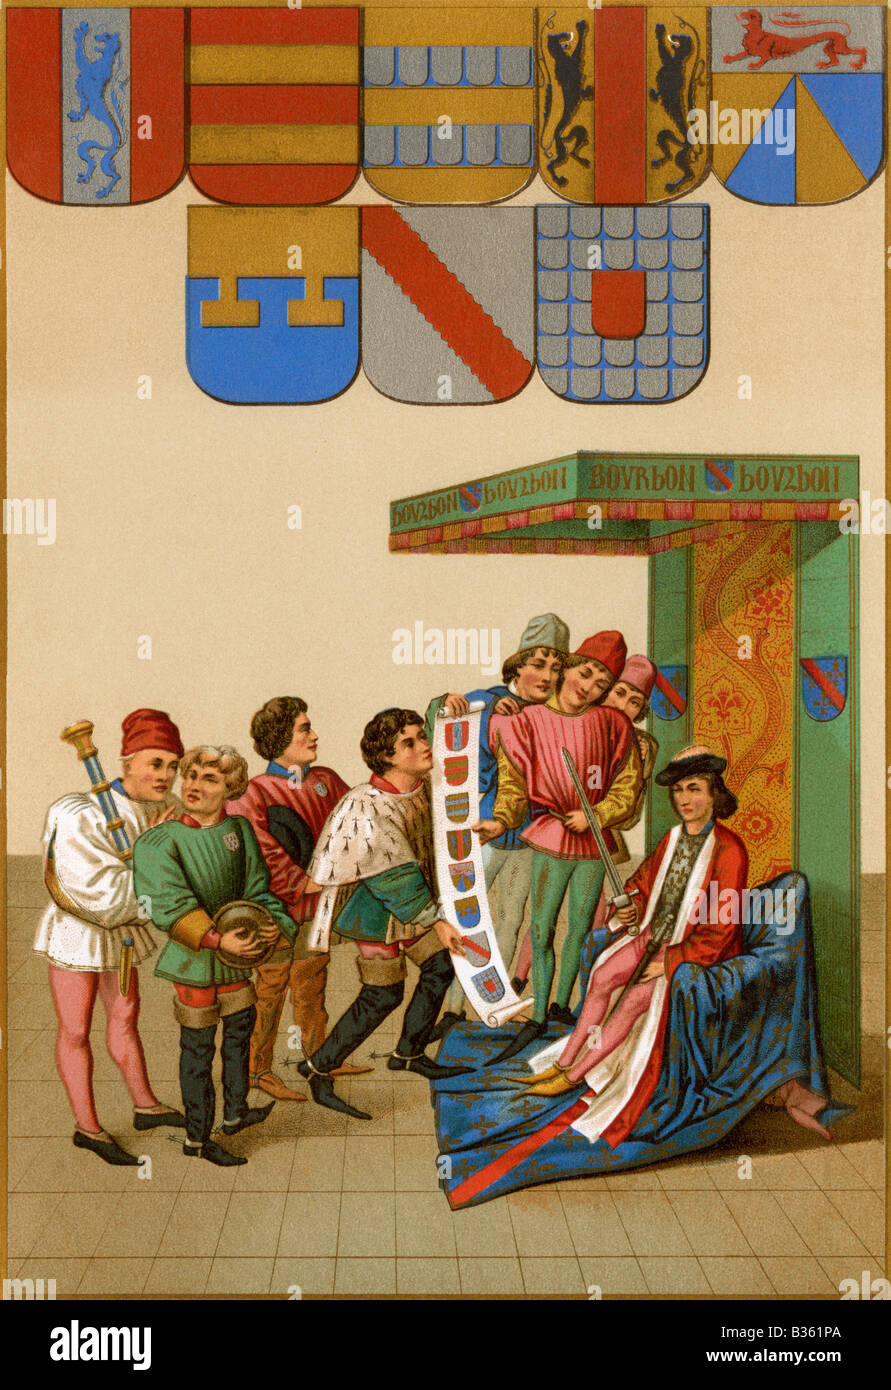 Duc de Bourbon reviewing the coats of arms of knights in a tournament. Color lithograph - Stock Image